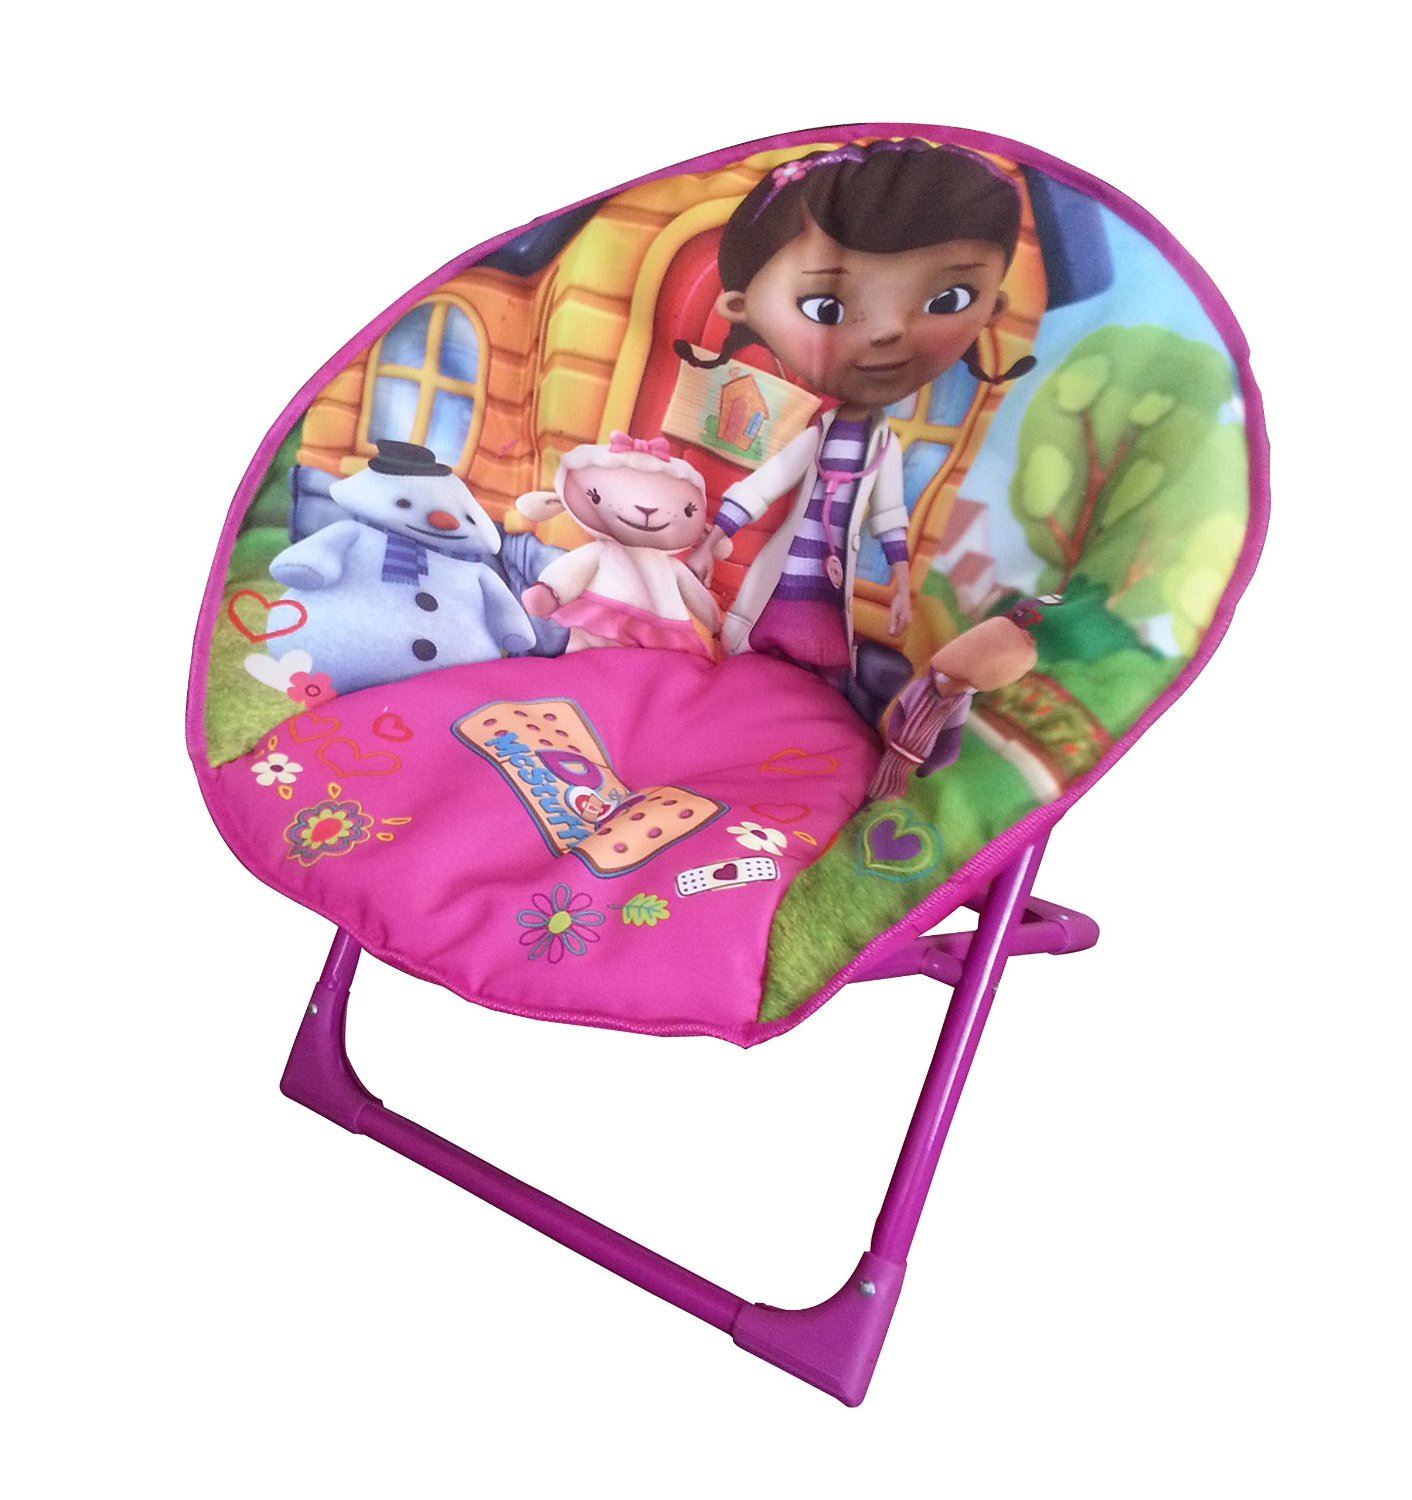 disney moon chair different models folding round soft padded chair for toddlers ebay. Black Bedroom Furniture Sets. Home Design Ideas